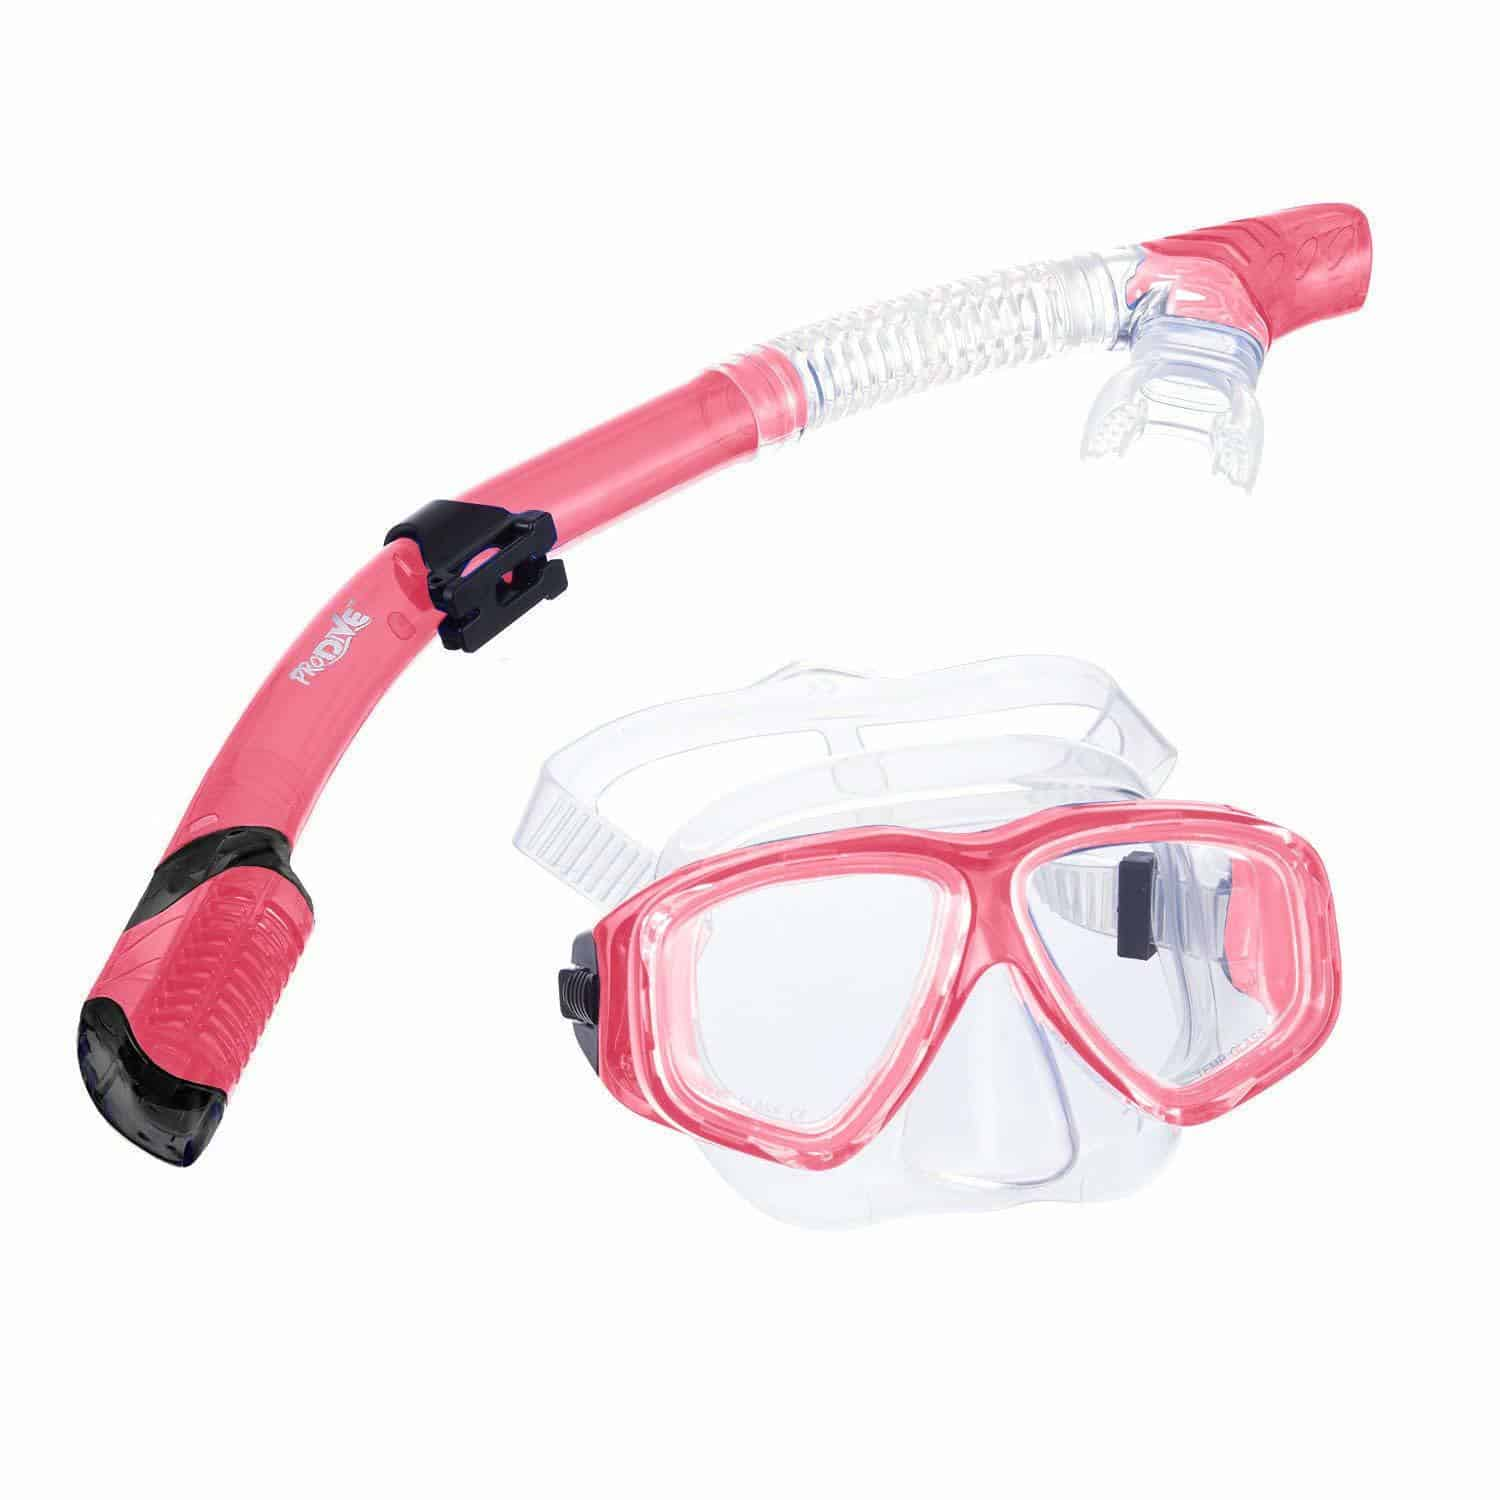 PRODIVE Premium Dry Top Snorkel Set - Rose